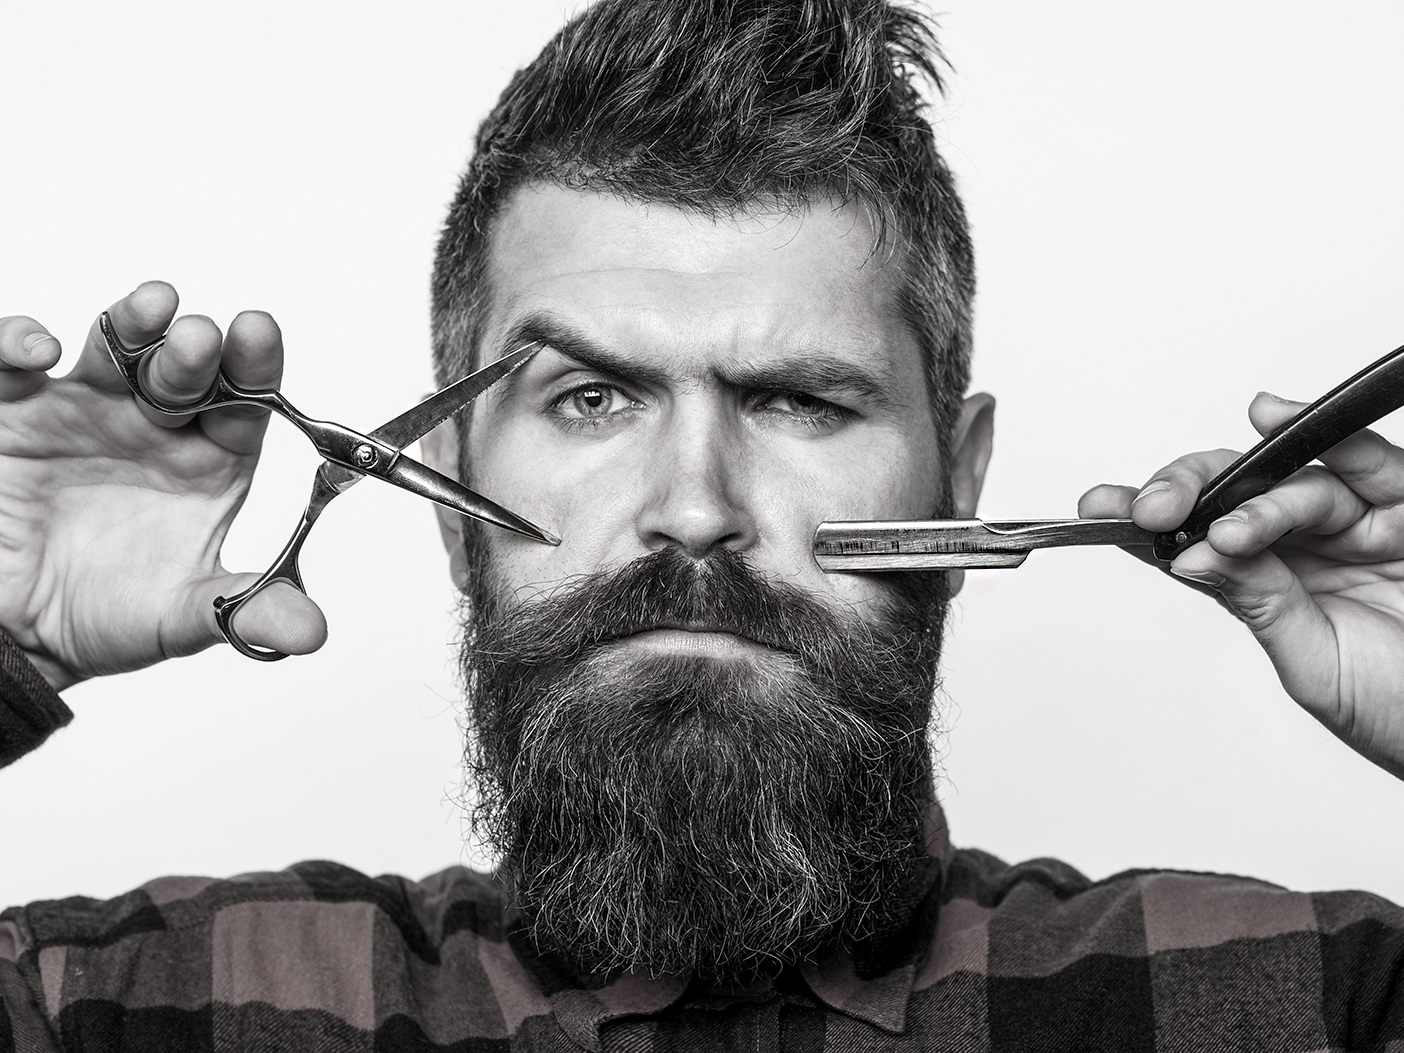 How To Cut Your Own Hair at Home: The Tips & Tools Men Need  SPY